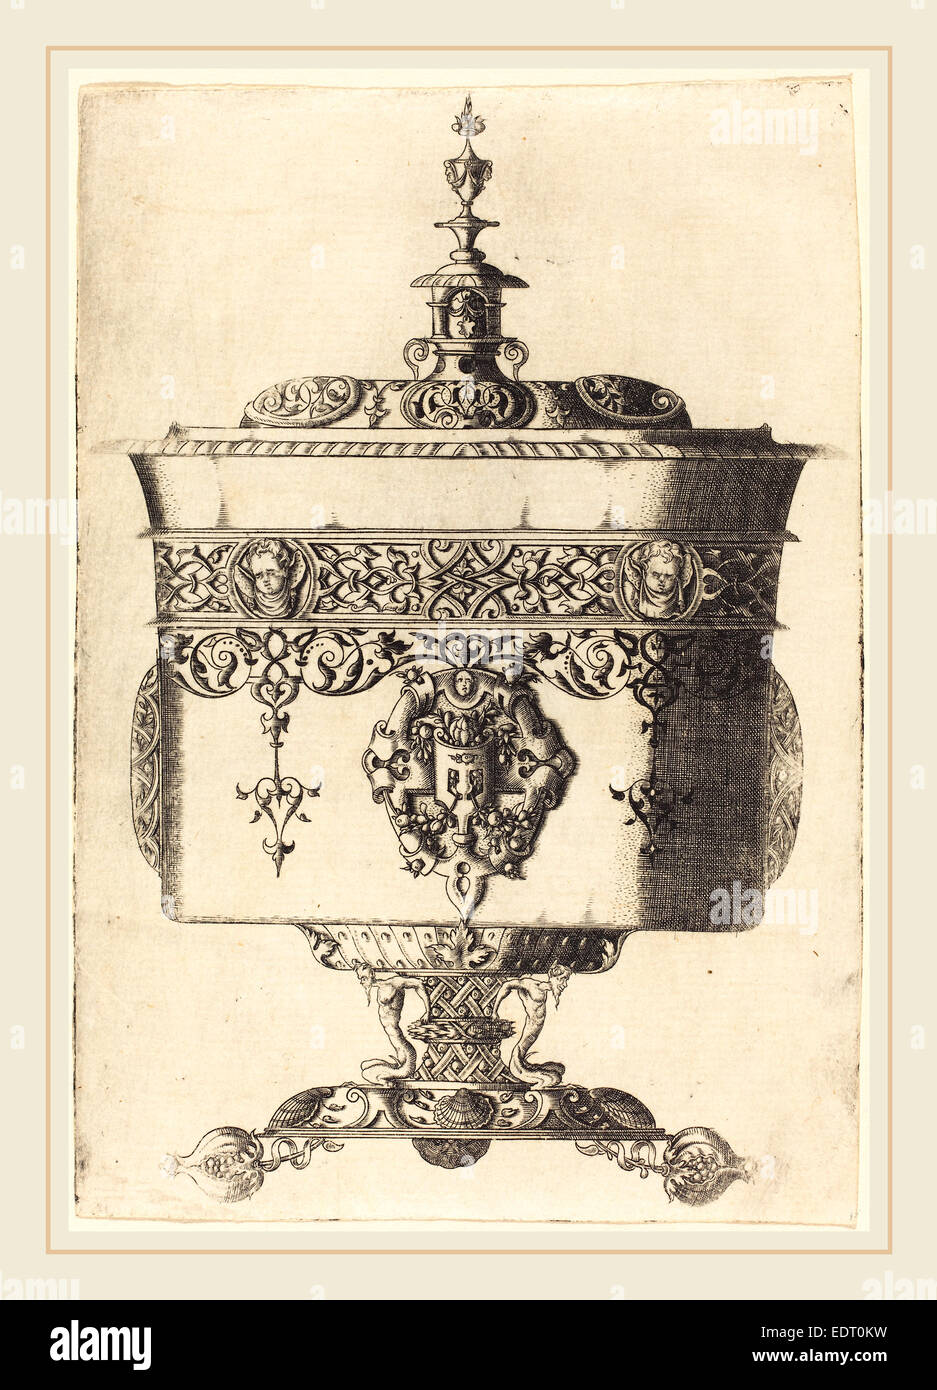 Mathis Zundt (German, probably 1498-1572), Richly Embellished Goblet, etching - Stock Image